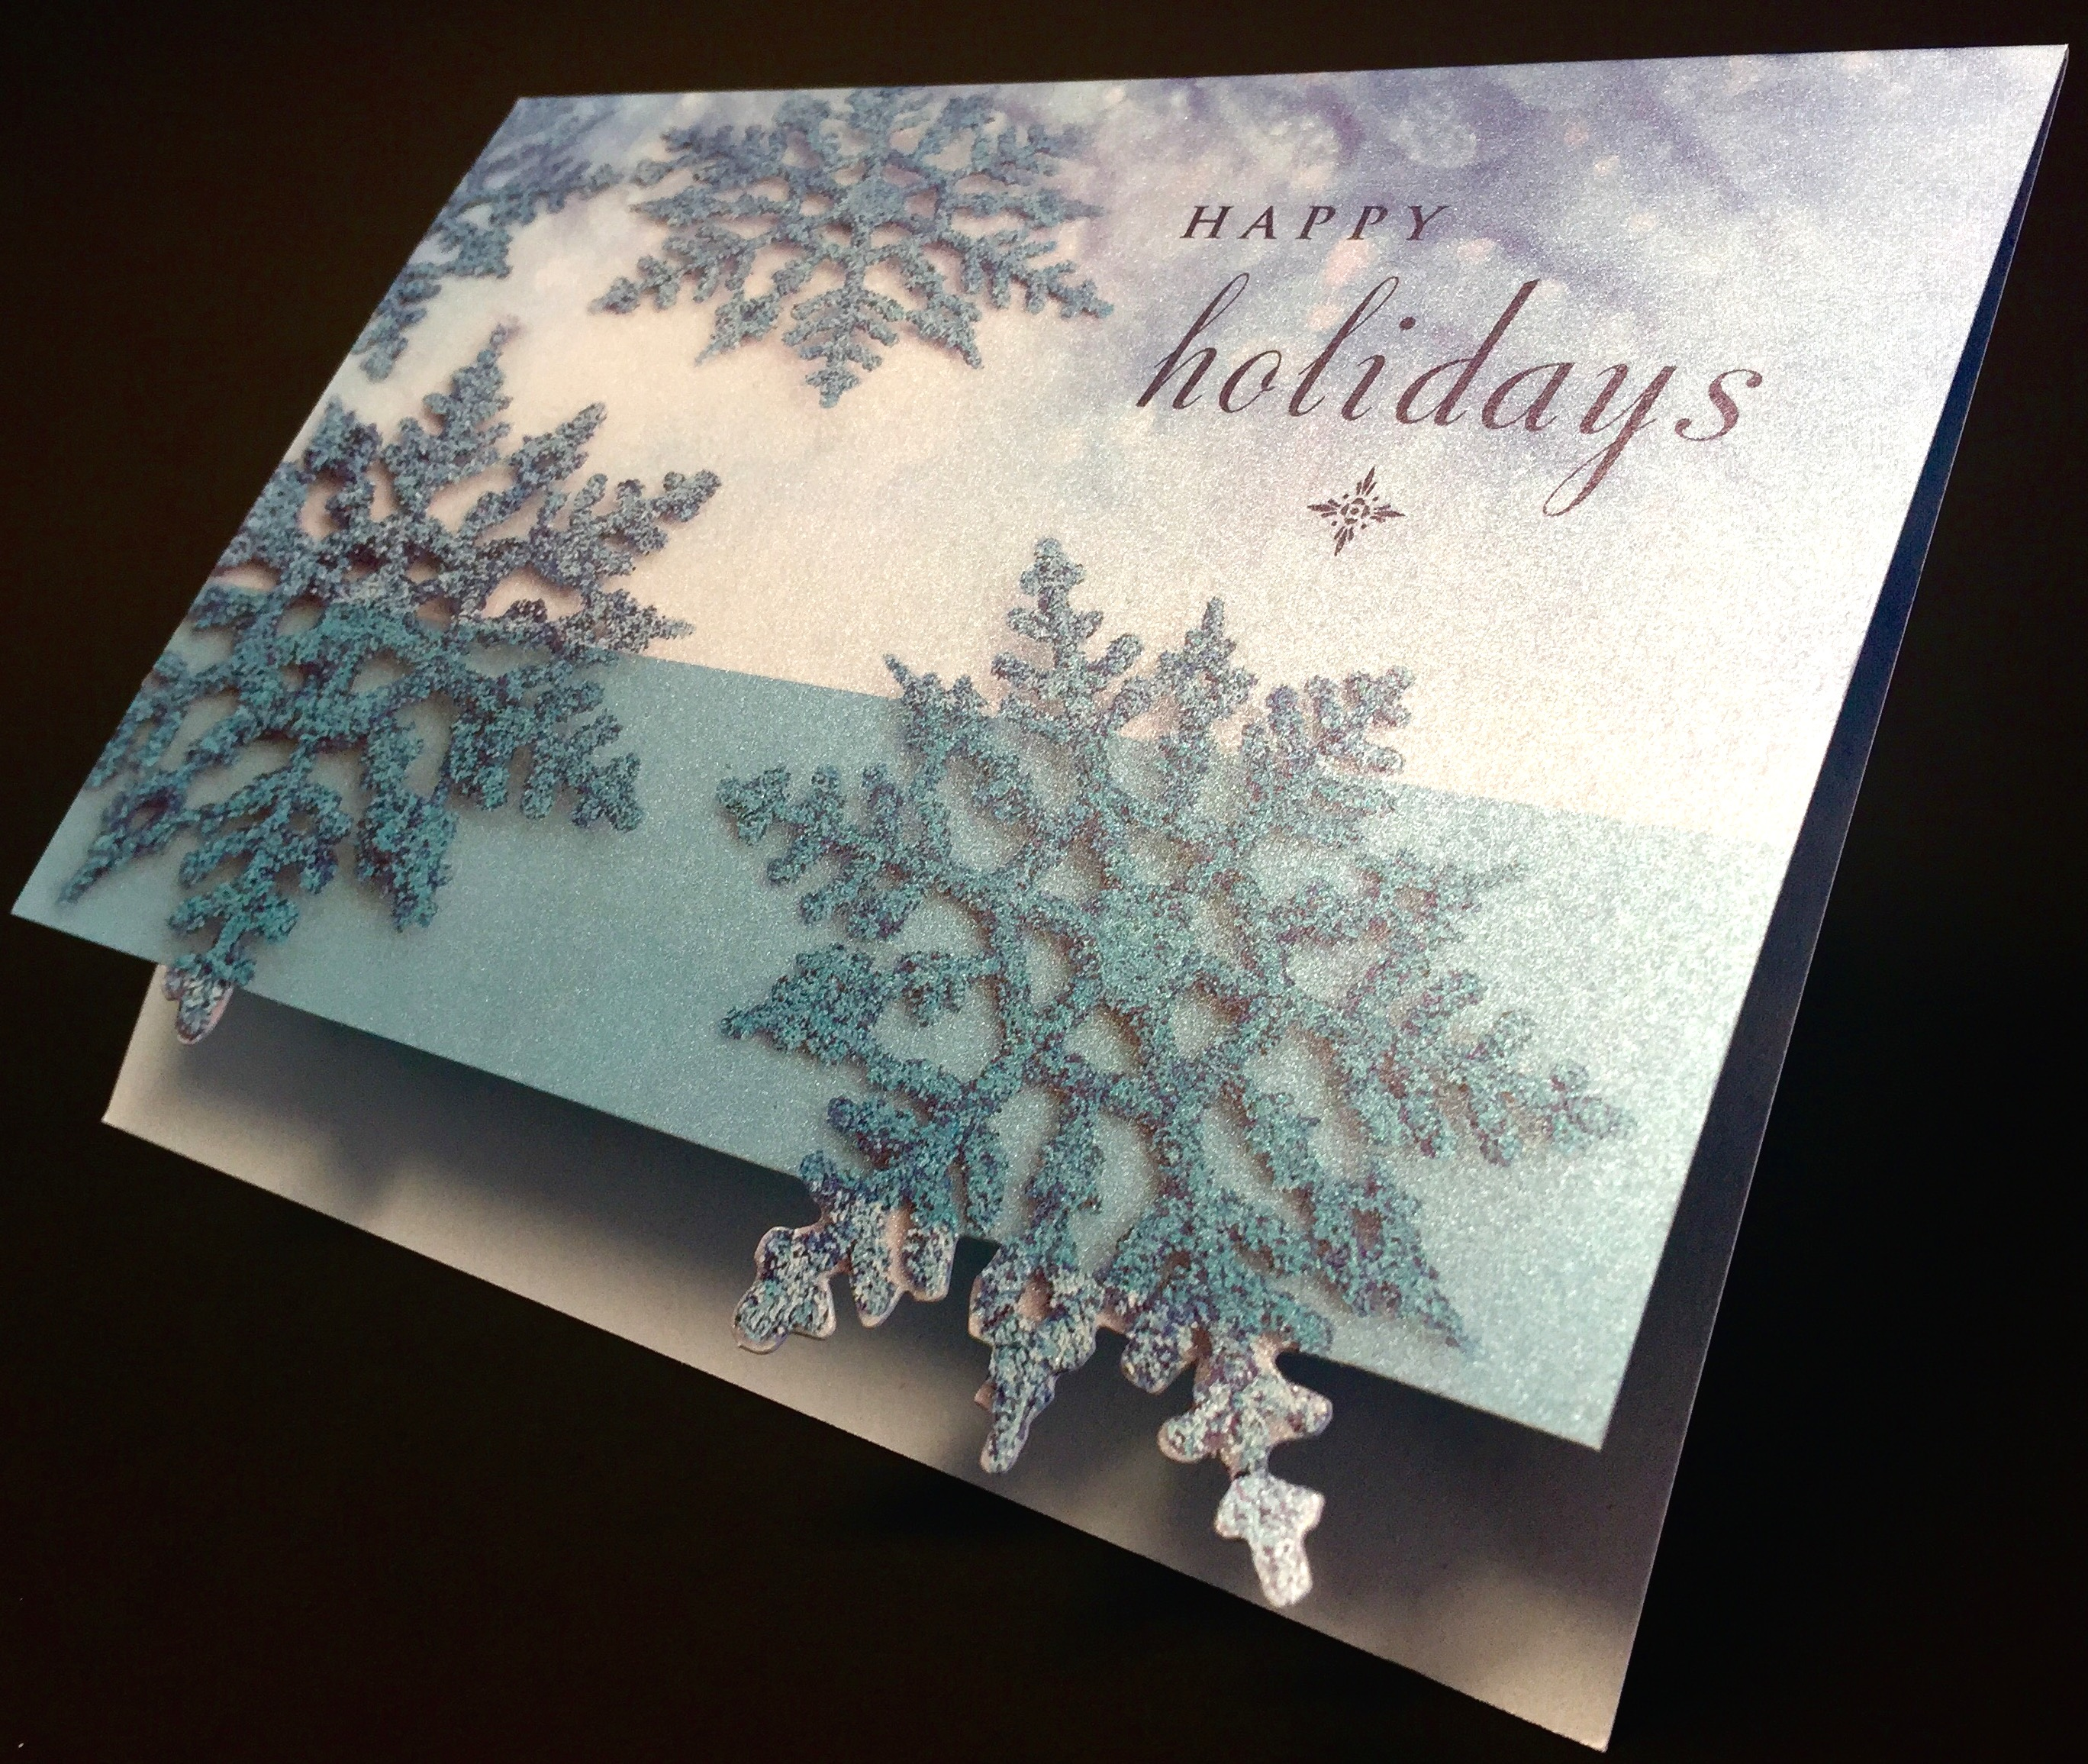 8 important reasons to send business holiday cards - Corcoran Printing